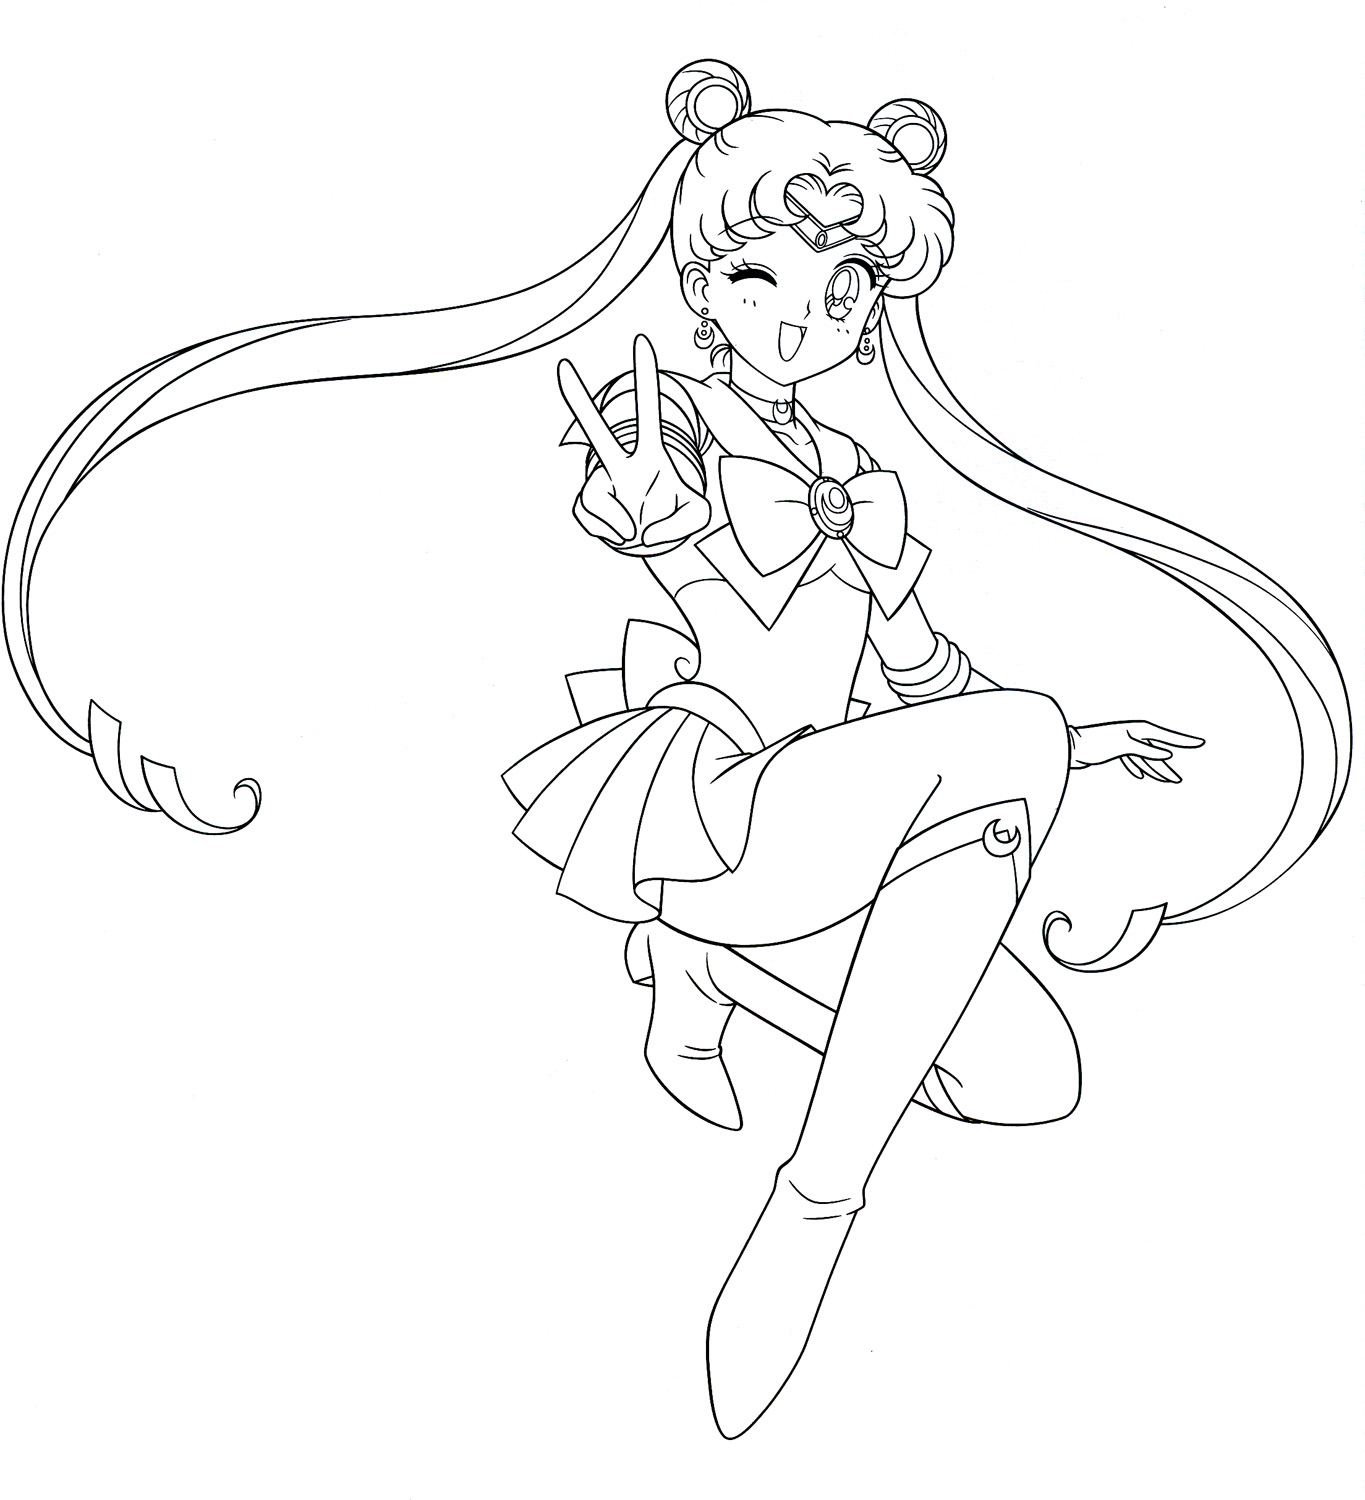 Sailorcolora on Colouring Pages